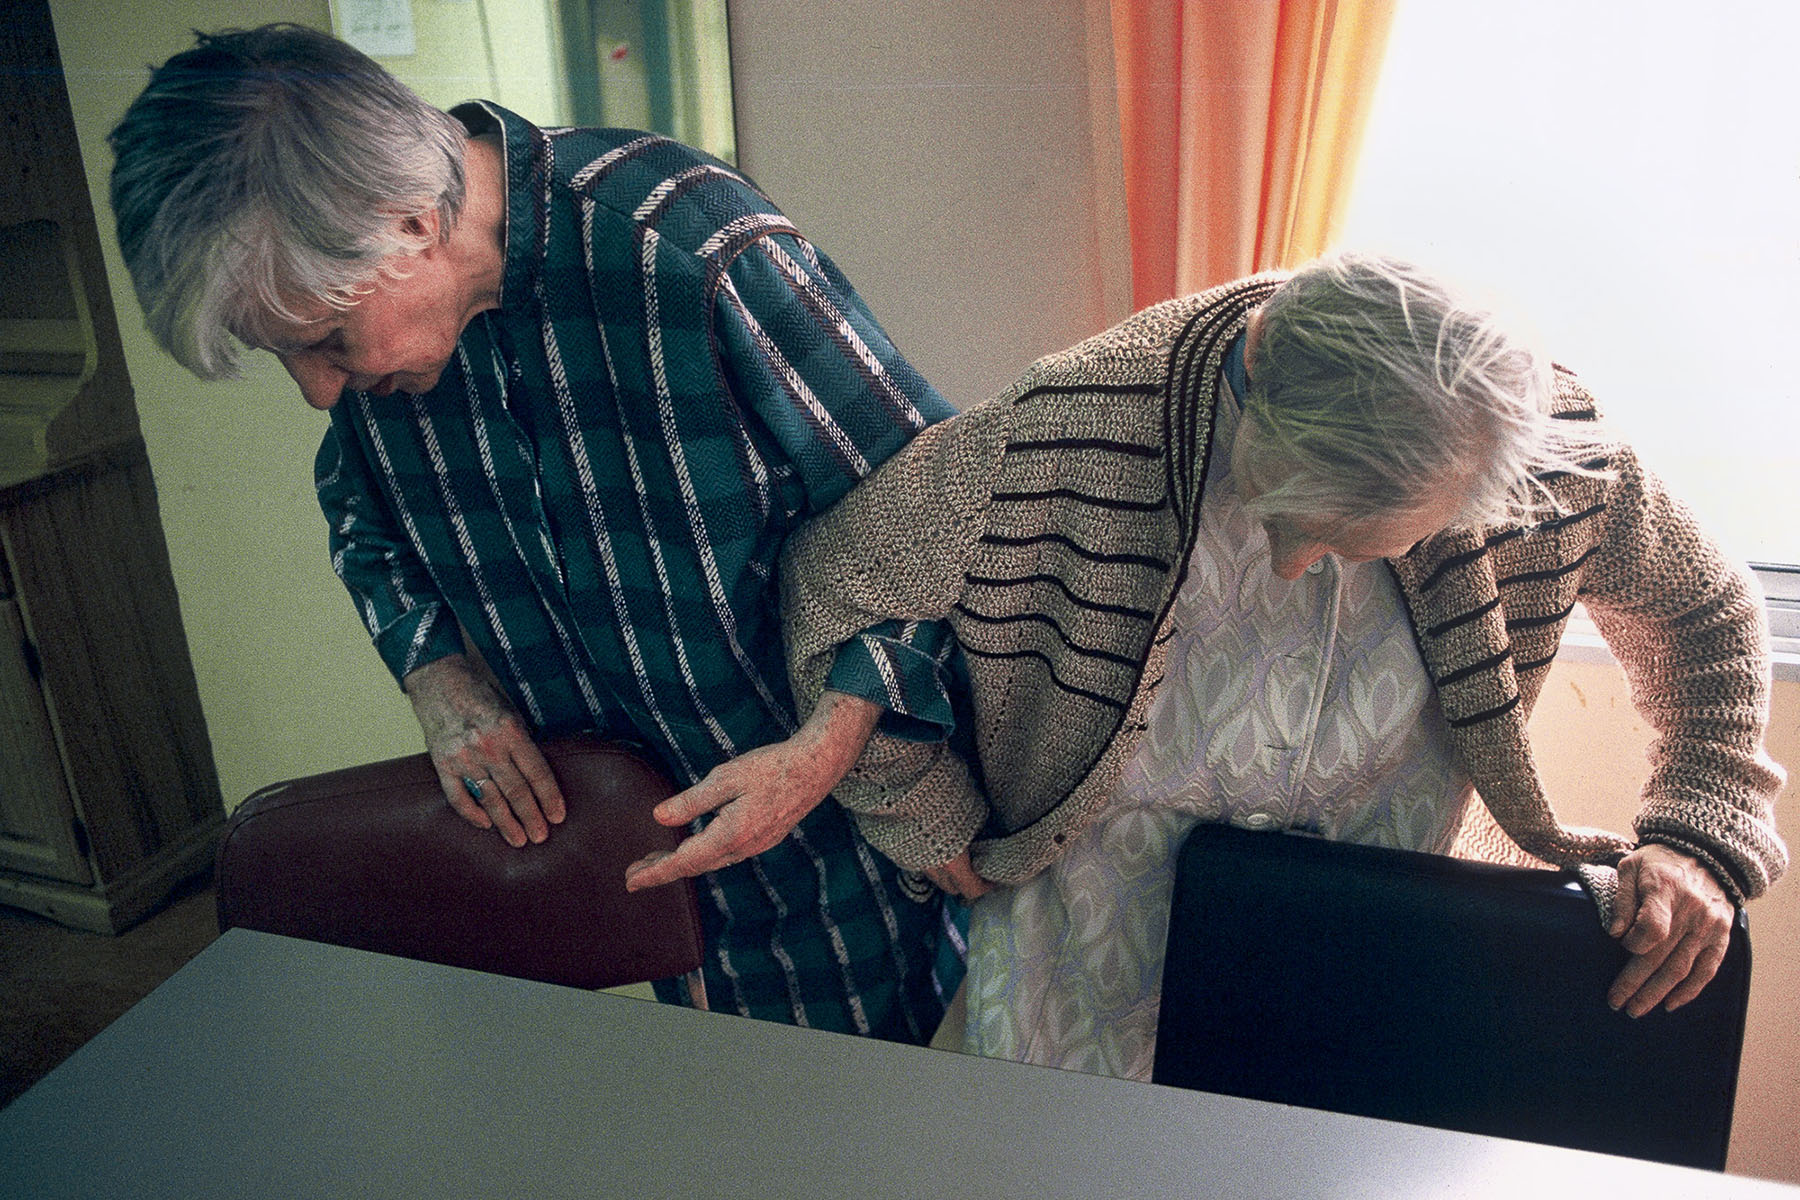 Paul Brousse geriatric center in 1993